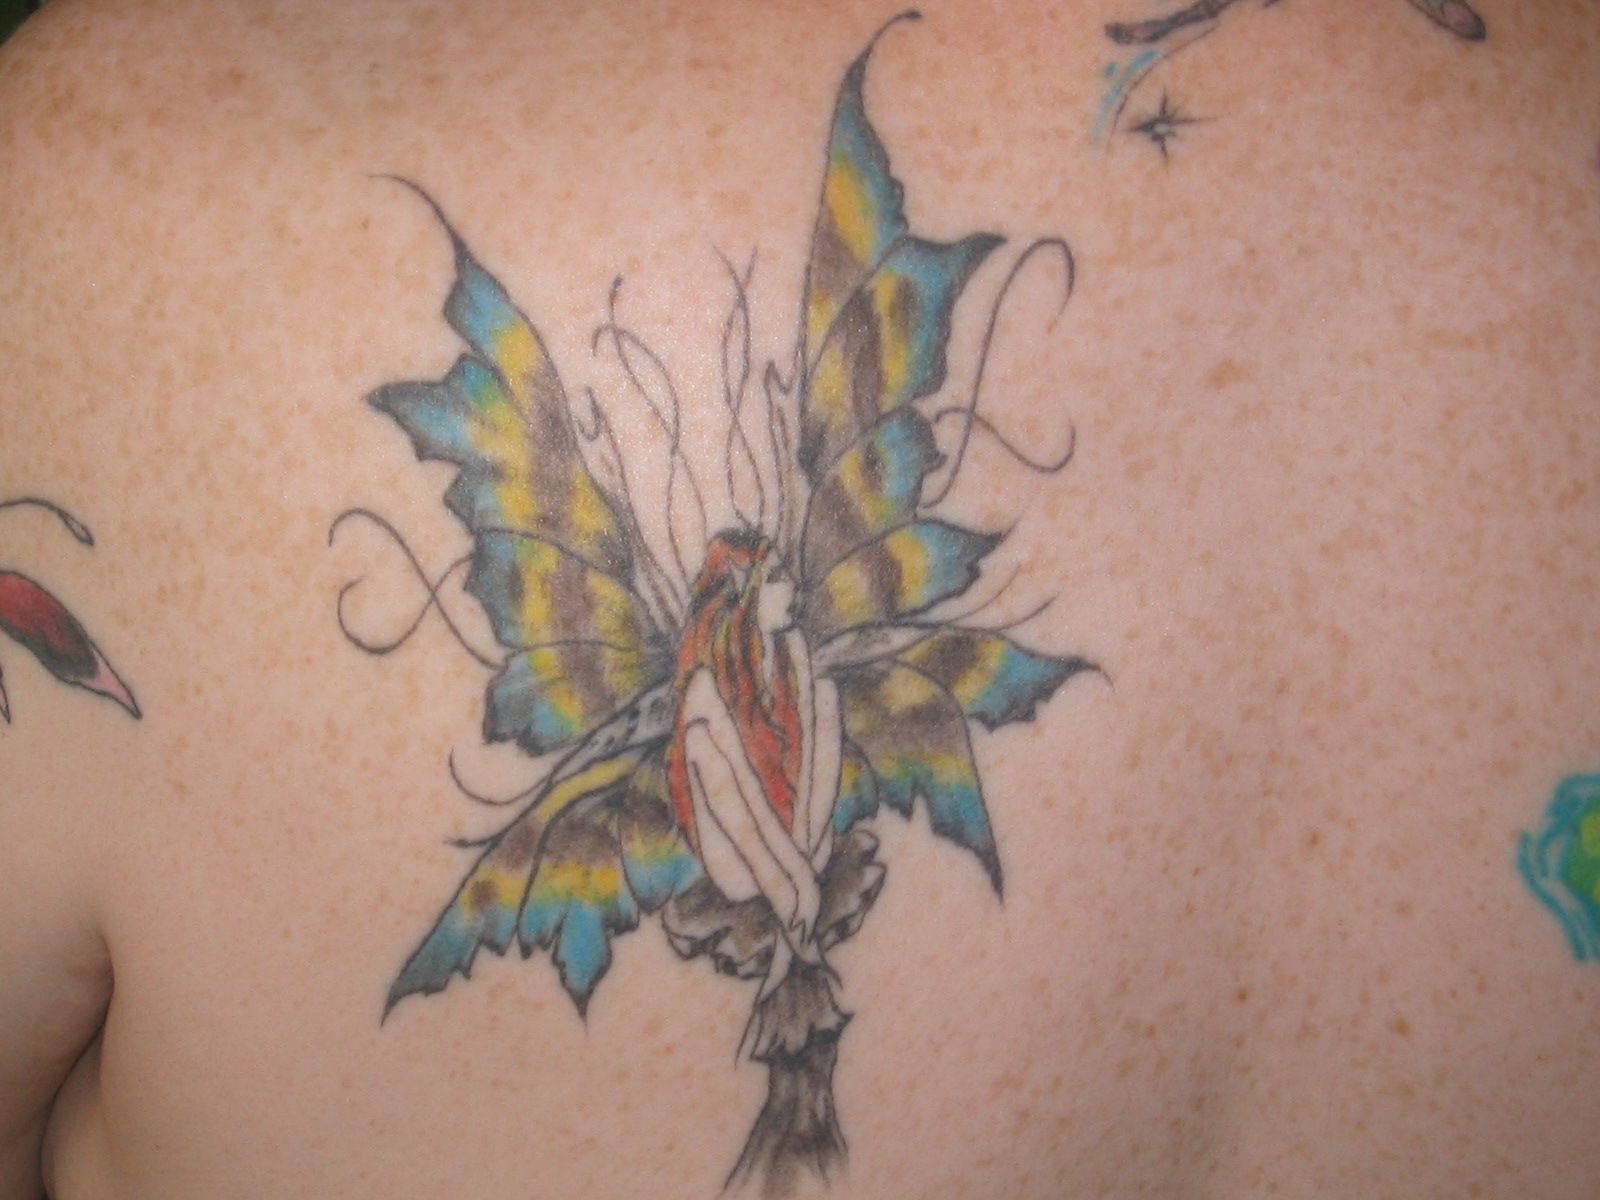 Another fairy on my back